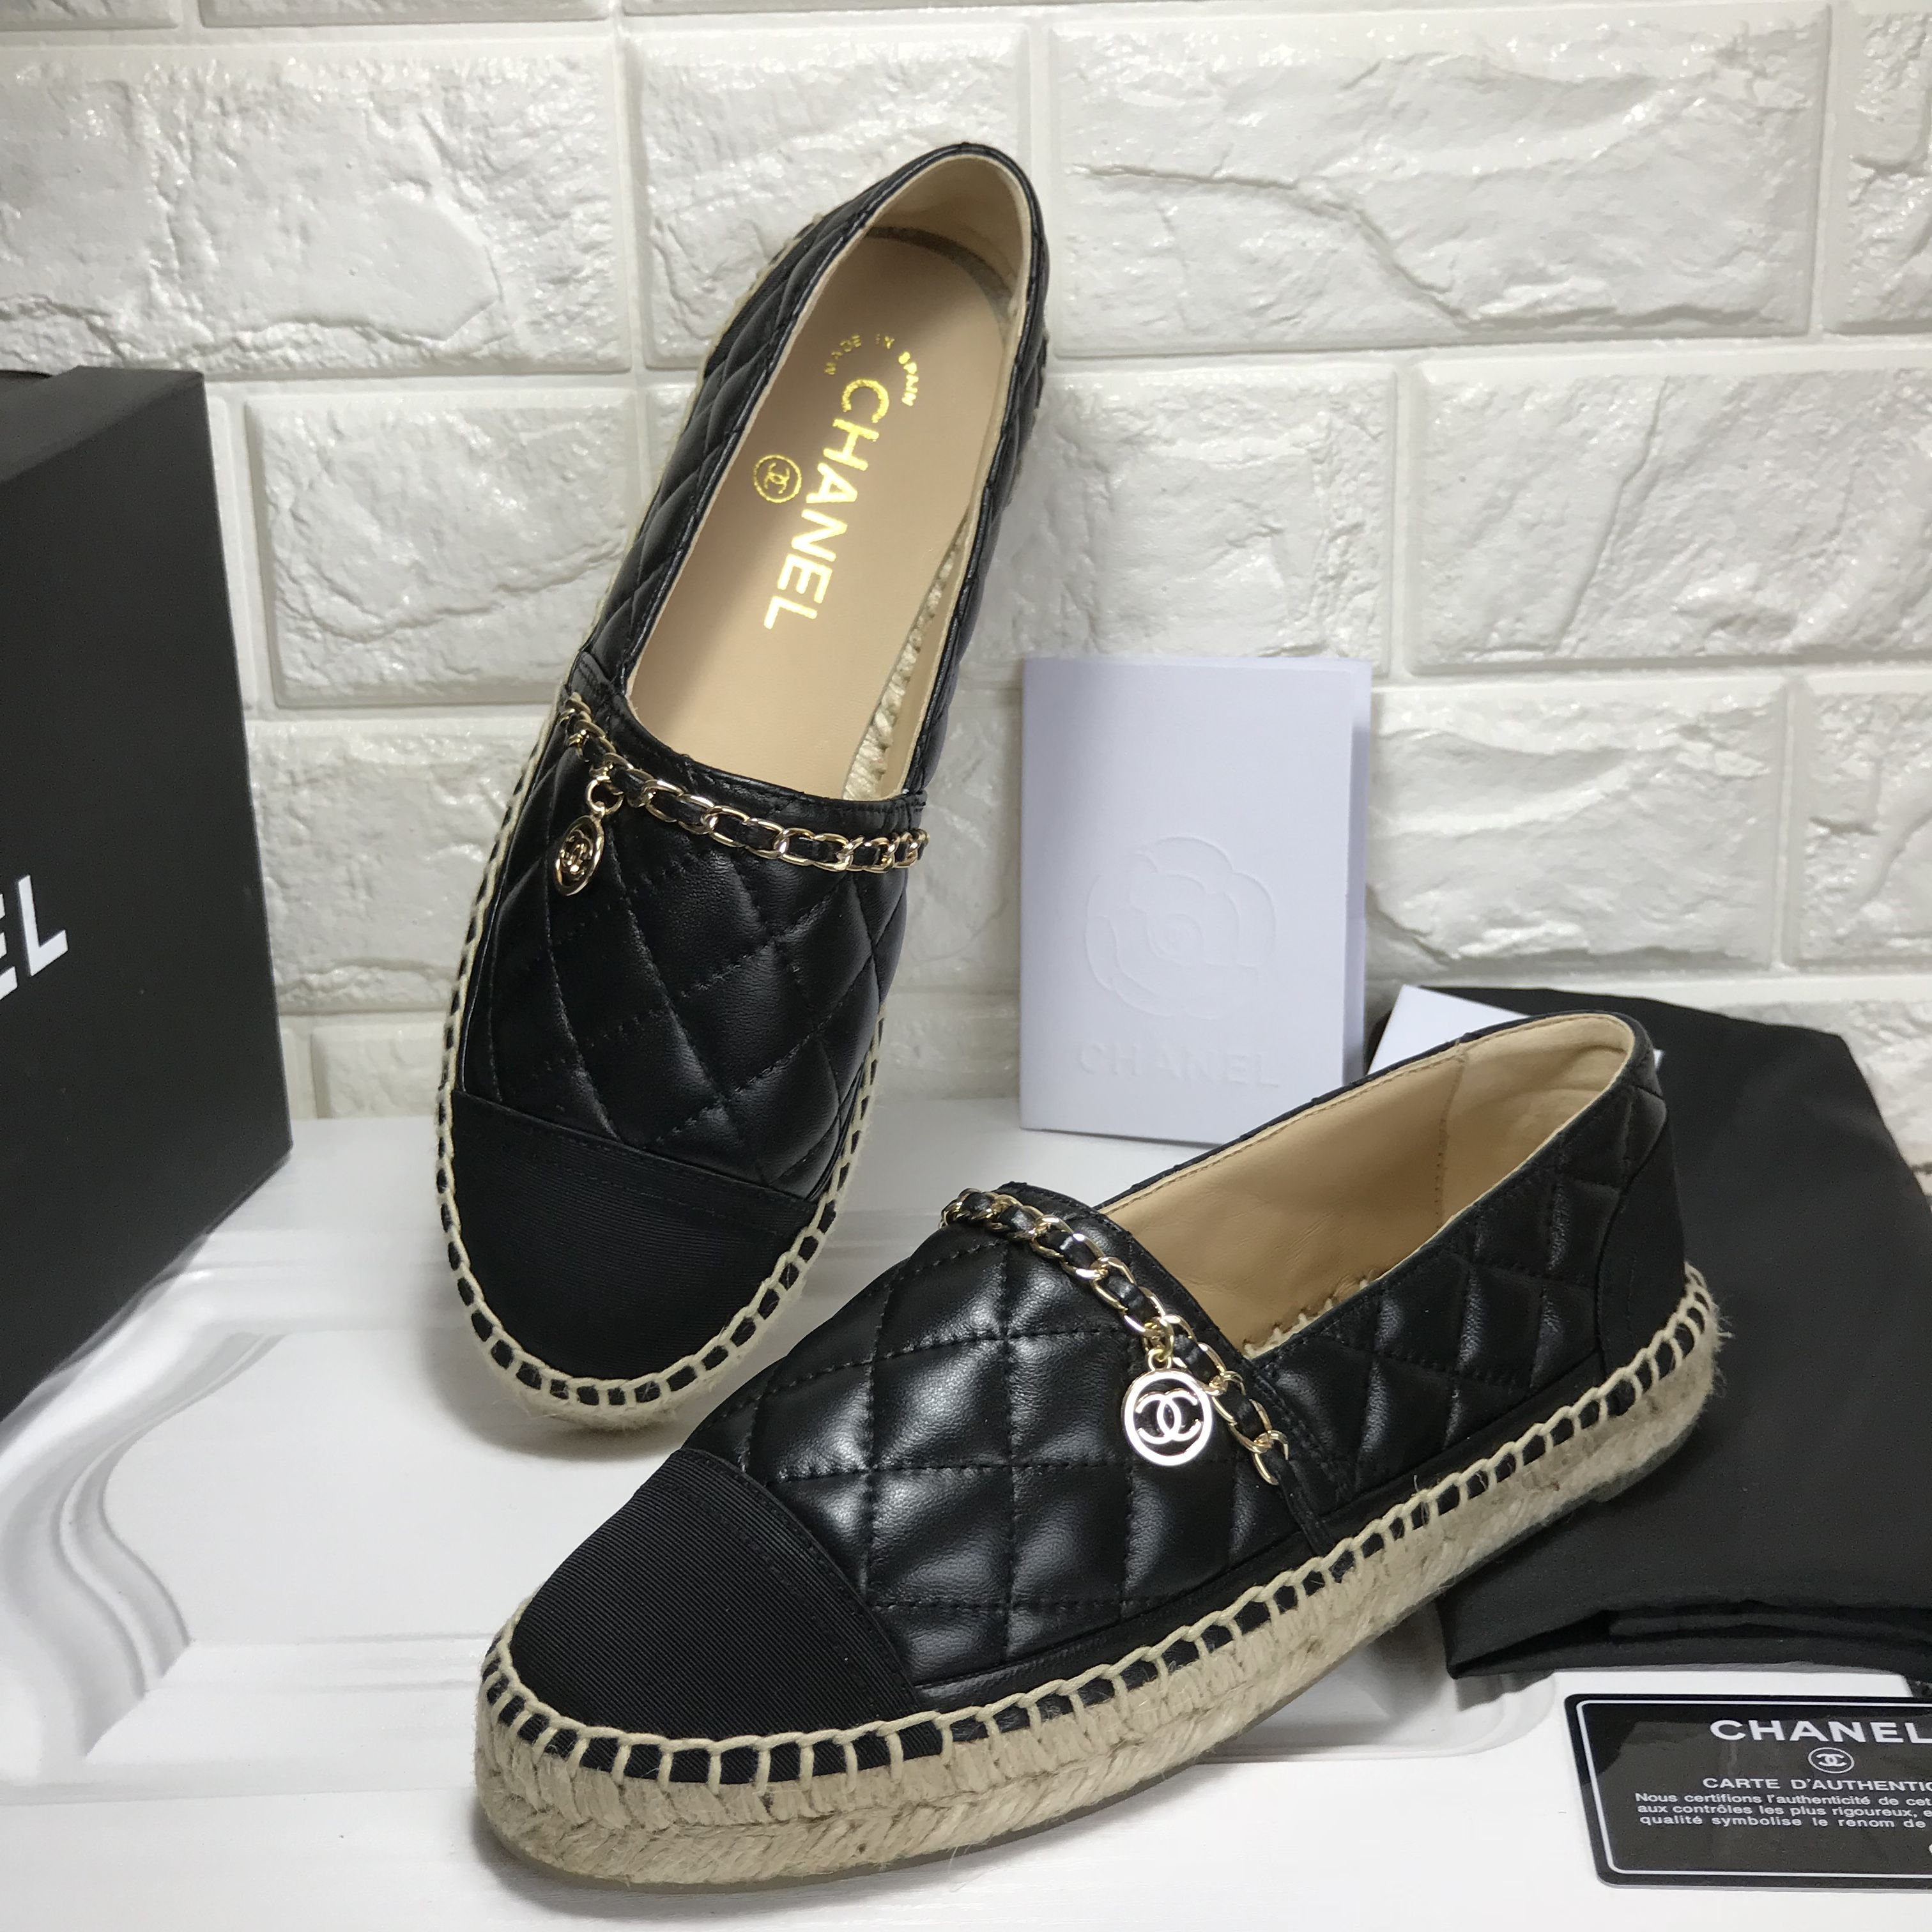 b8b095c9885 Chanel quilted leather espadrilles